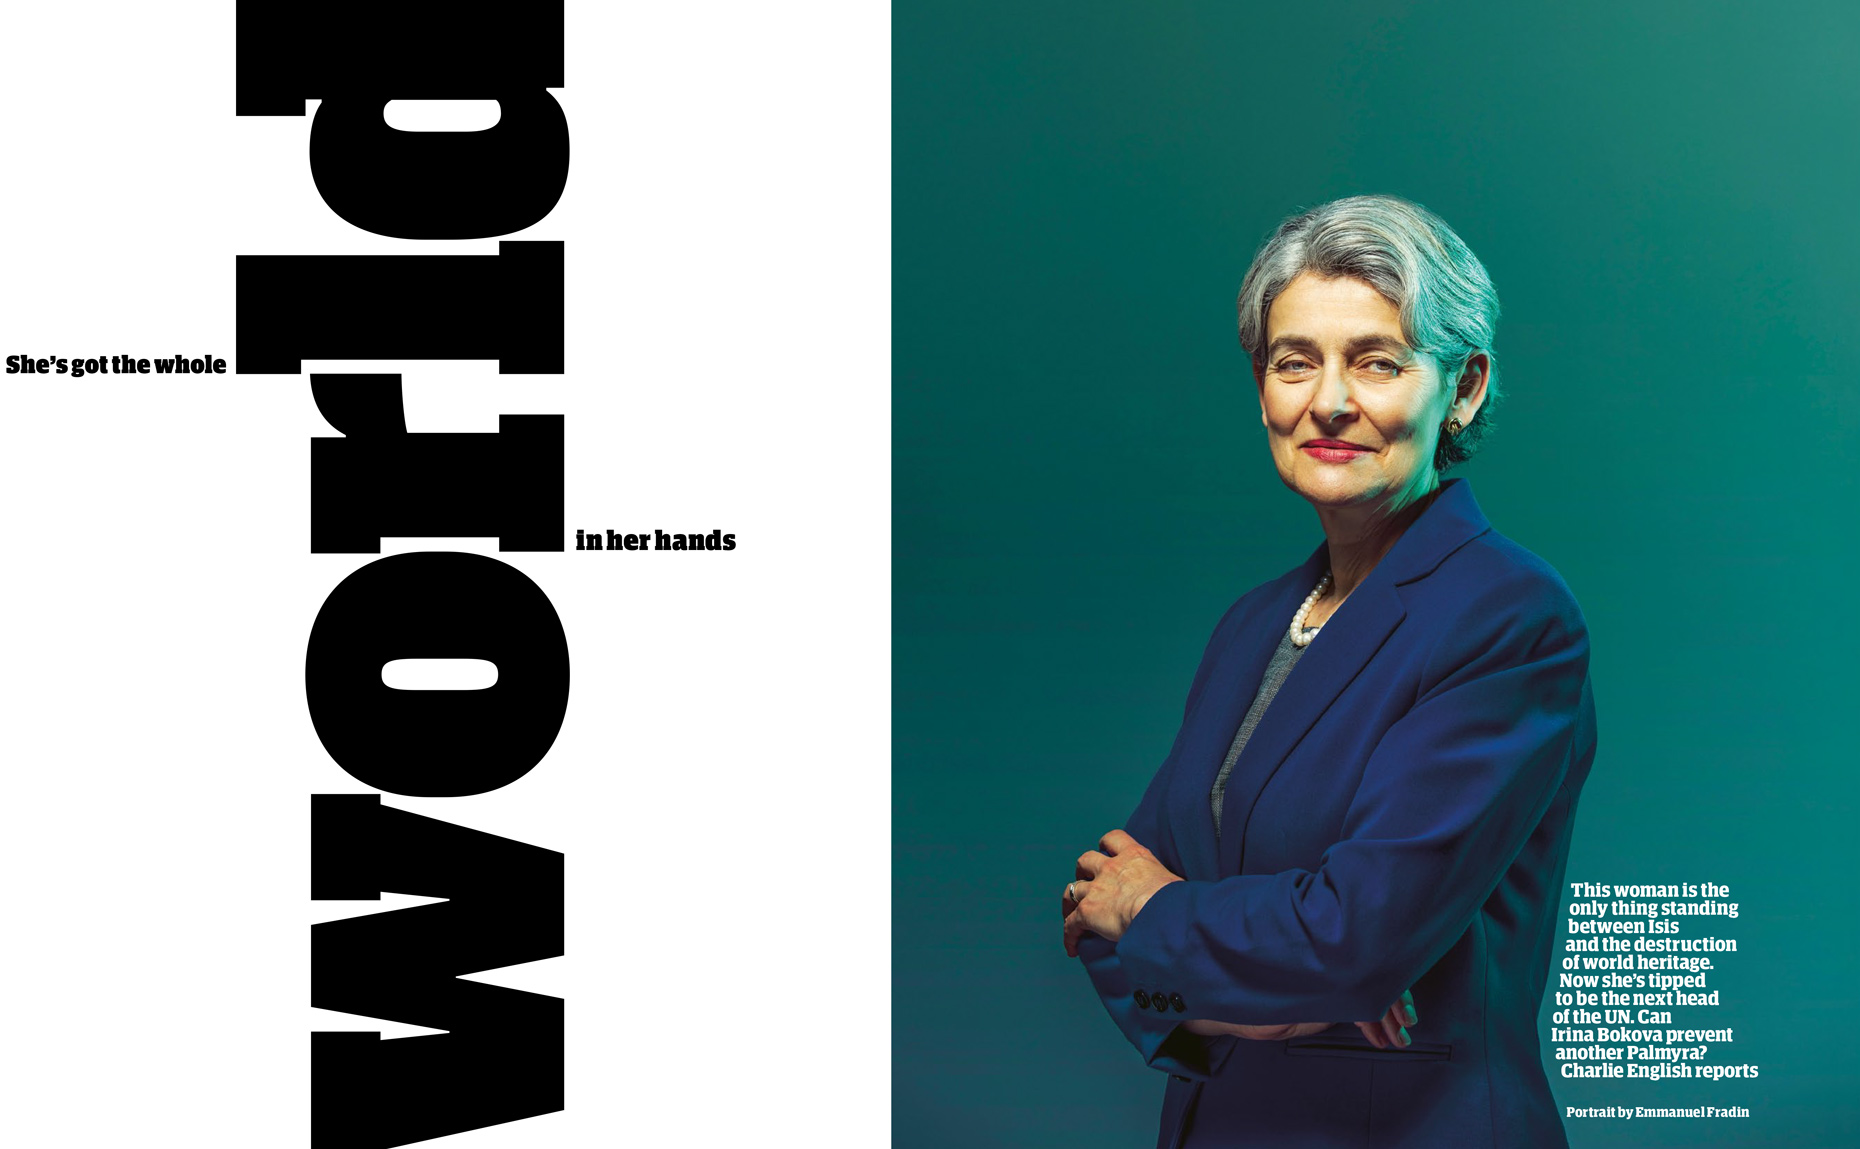 Commissioned For The Guardian Weekend Magazine - UNESCO Director-General Irina Bokova